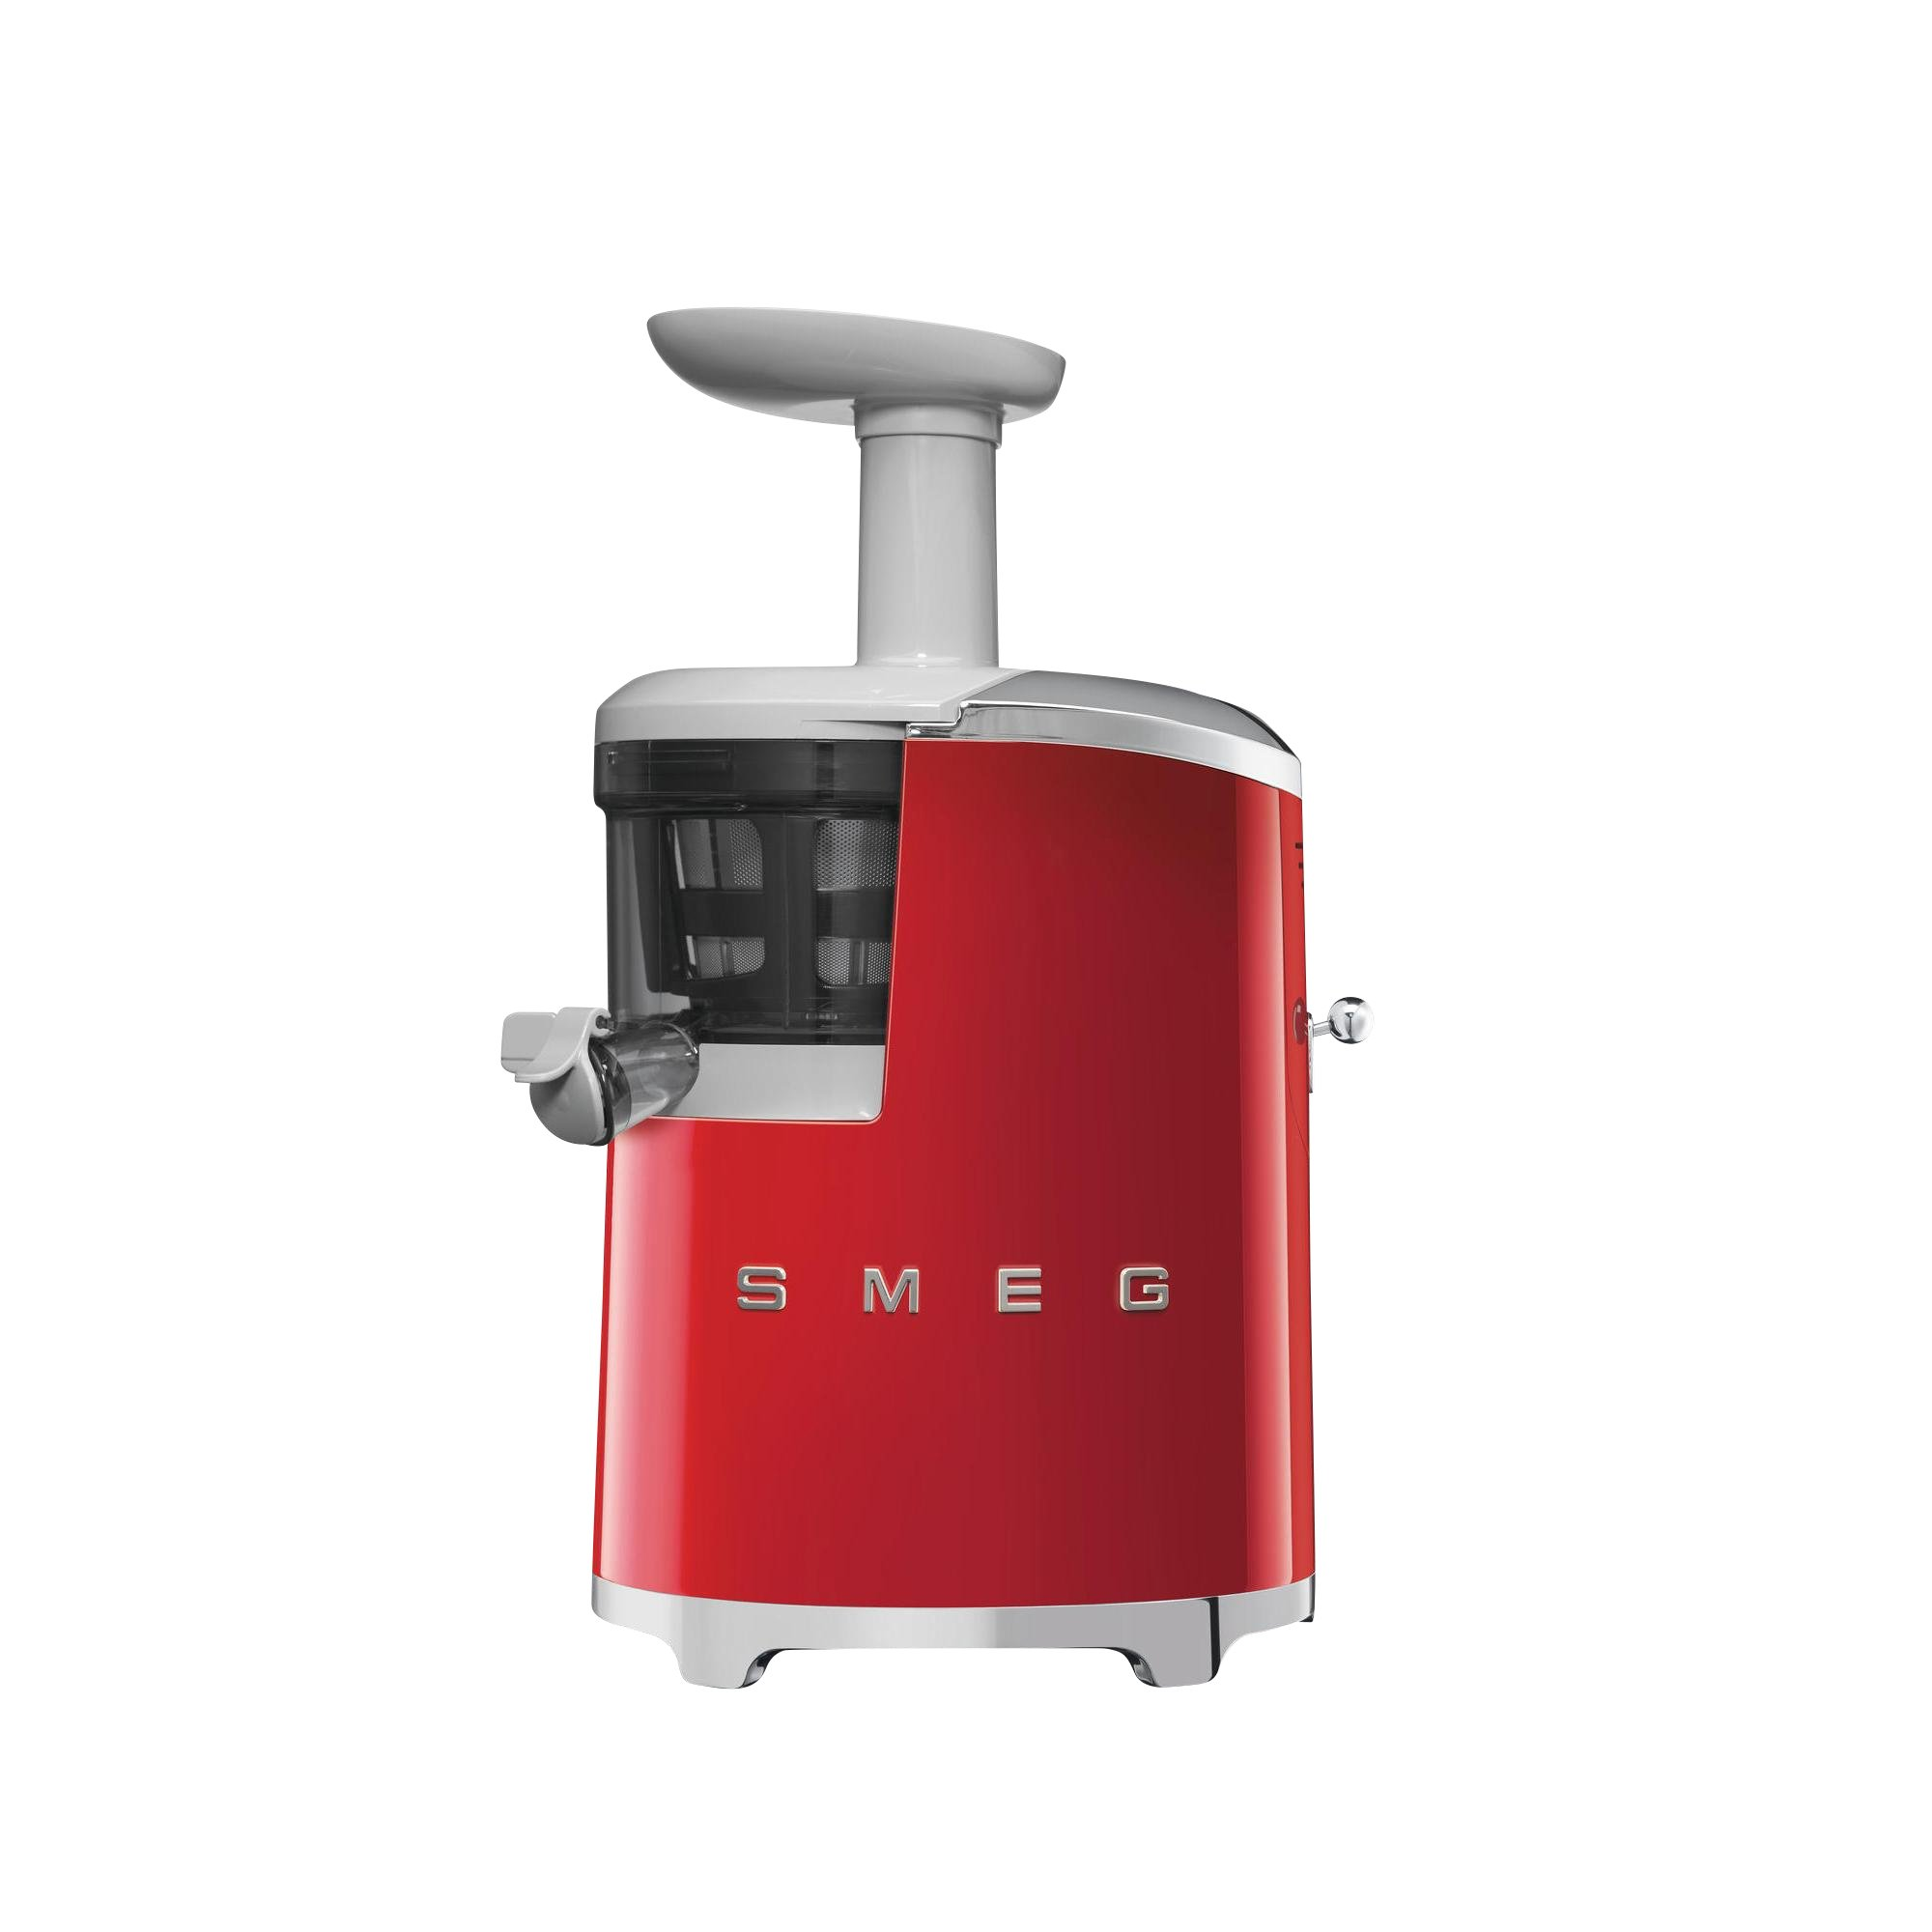 sjf01 Slow Juicer Centrifuga Standard rosso